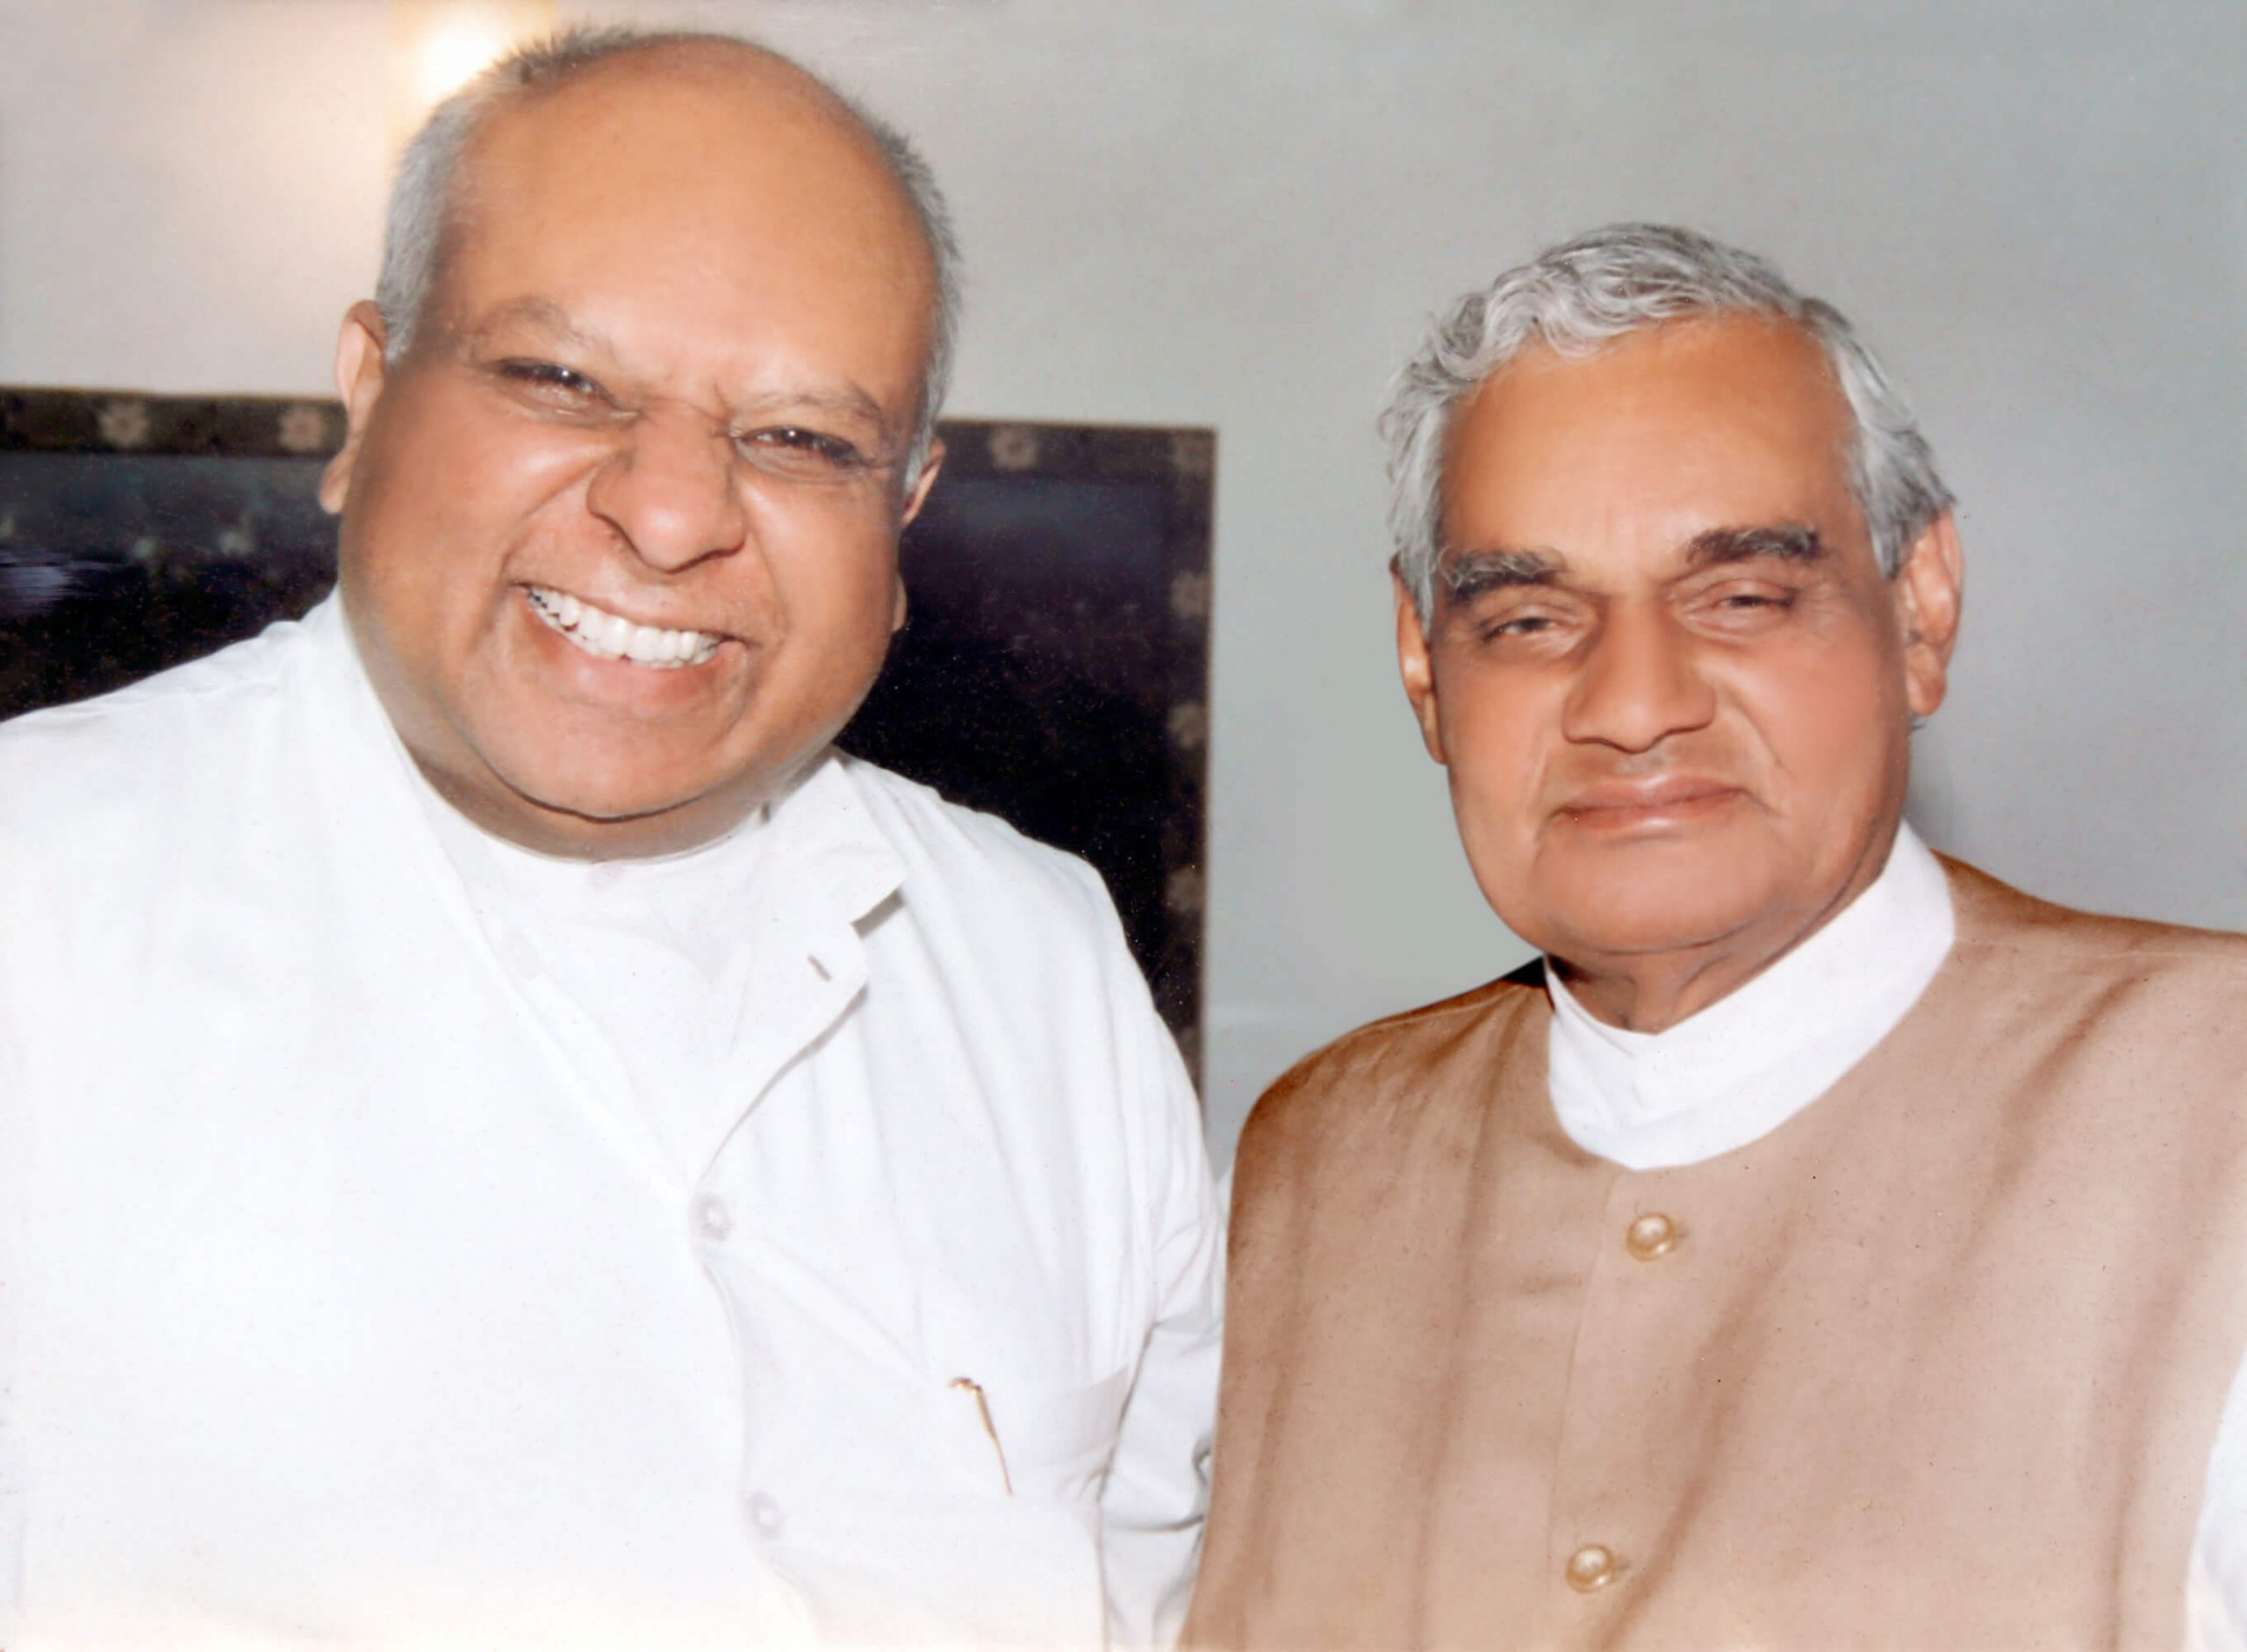 Dr. M with Atal Bihari Vajpayee (Former Prime Minister of India)